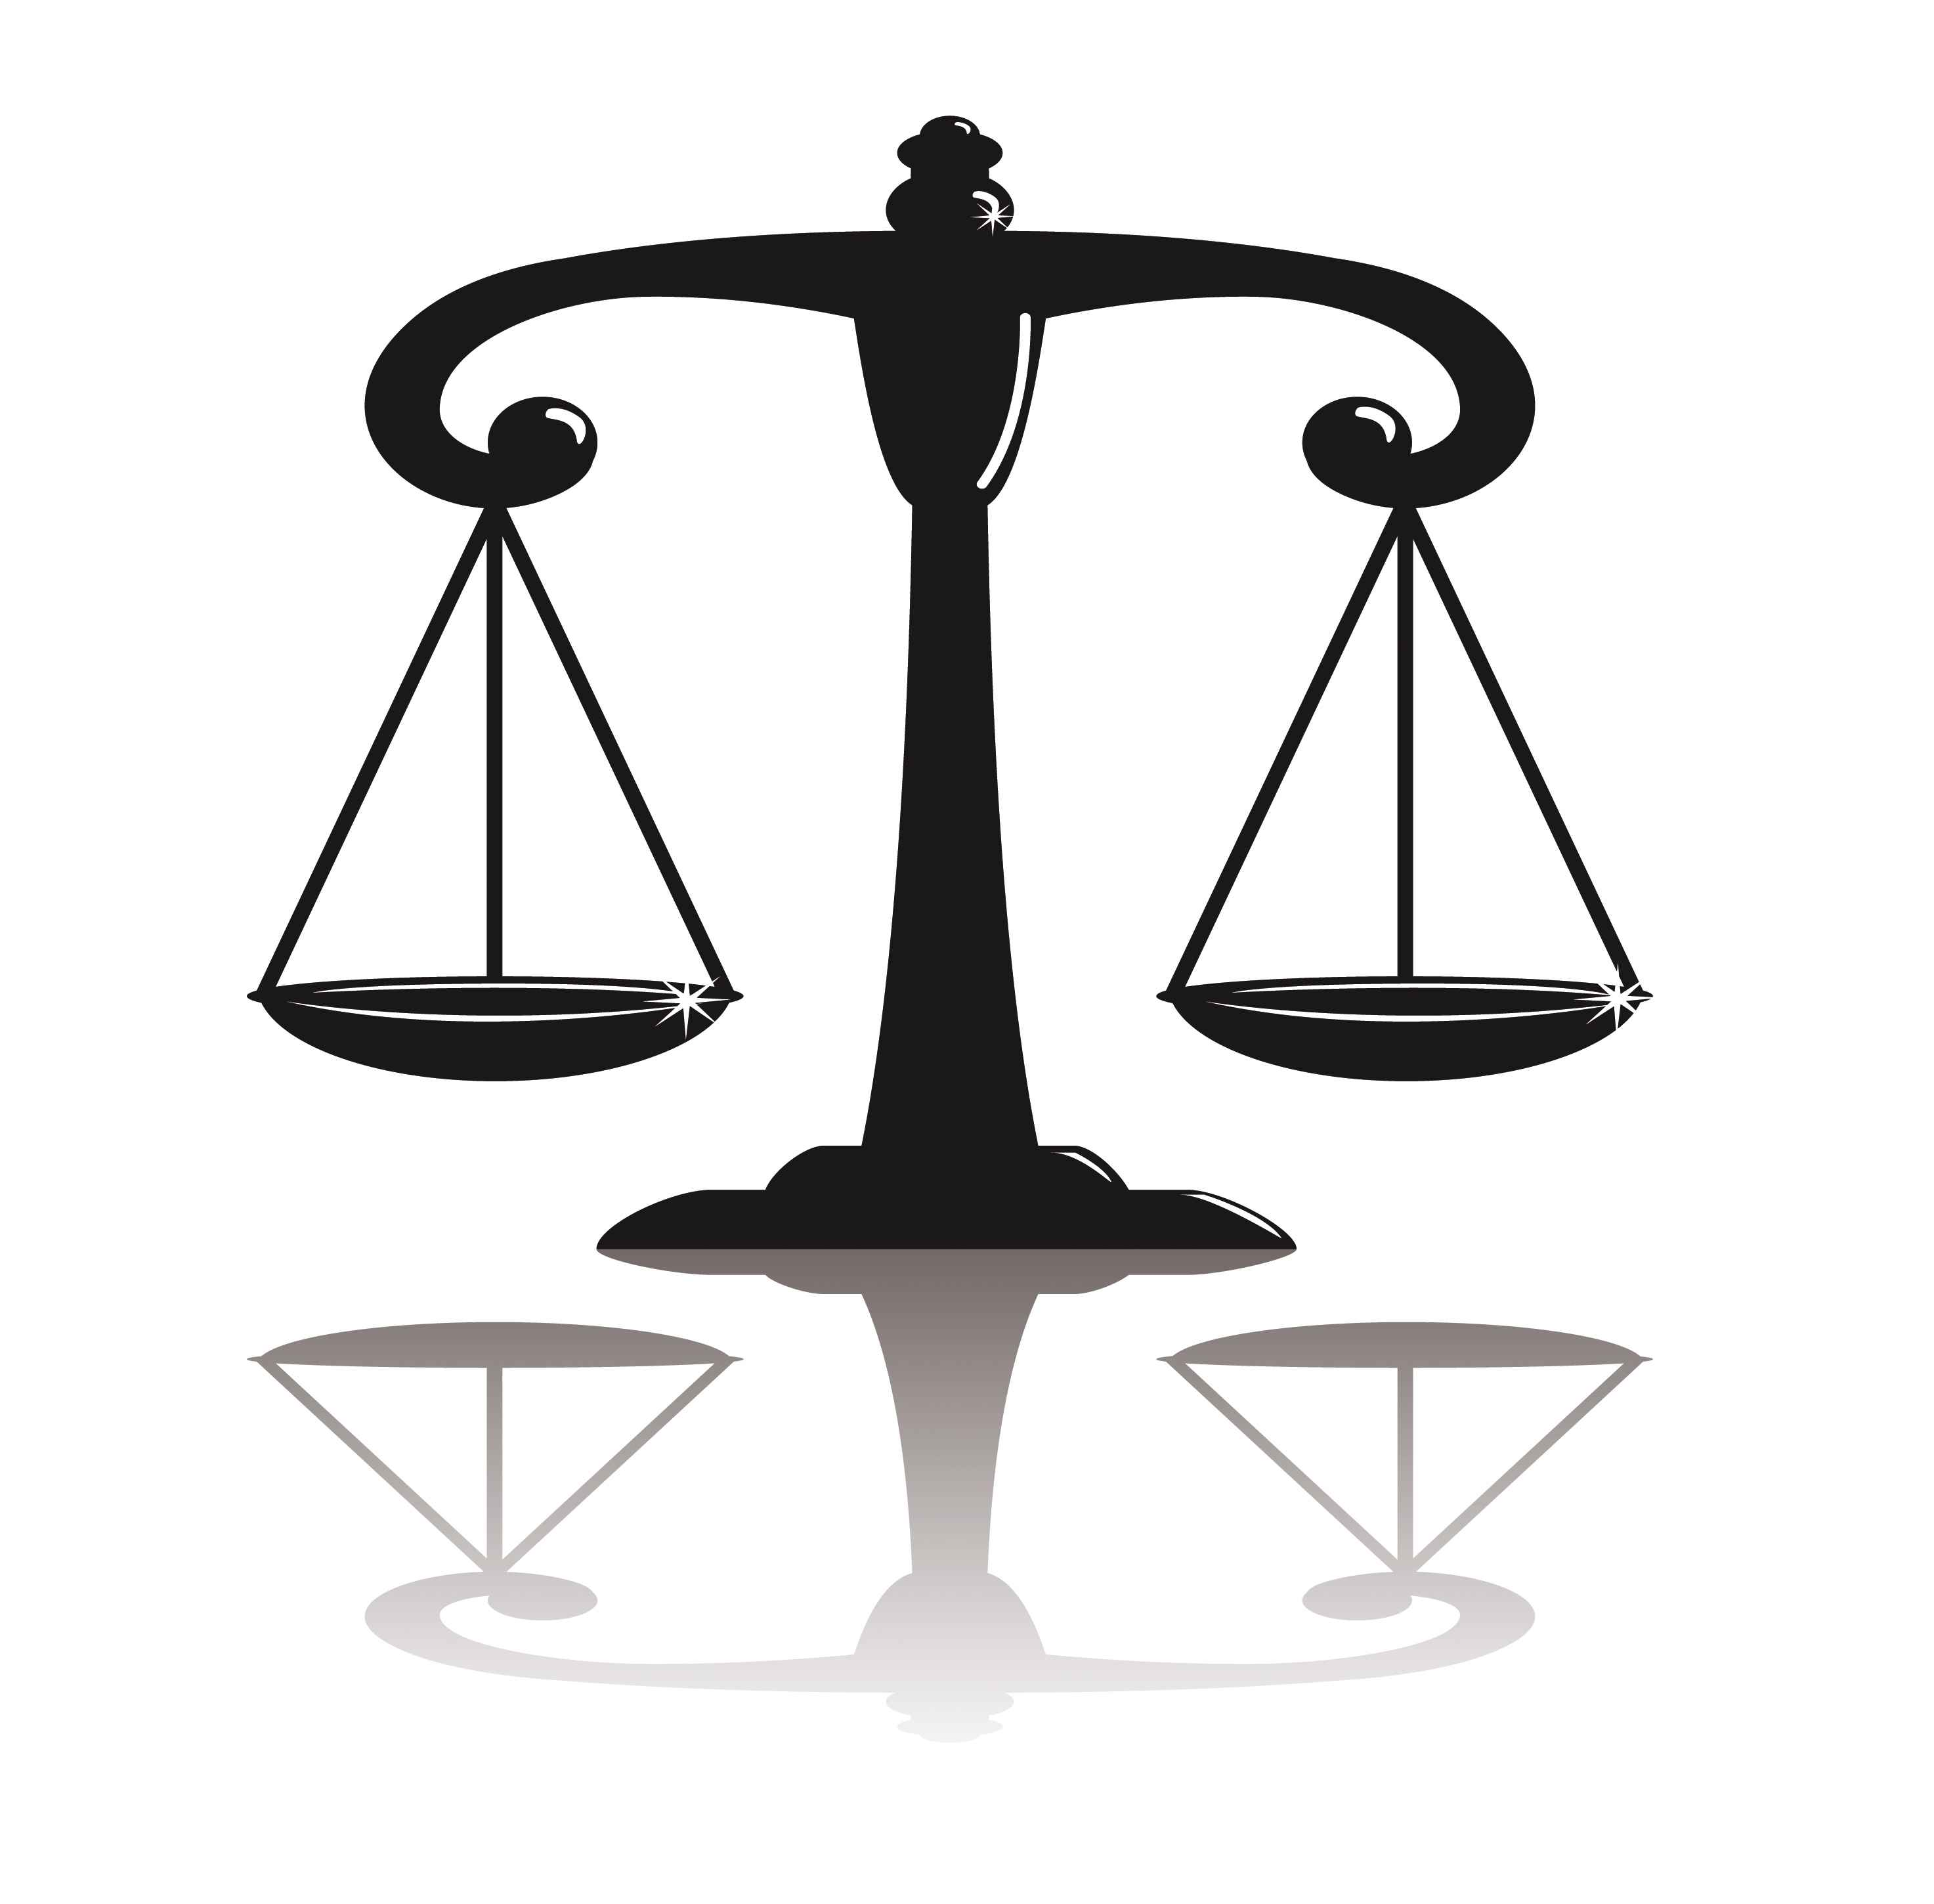 Gavel clipart establish justice. Free images scales of